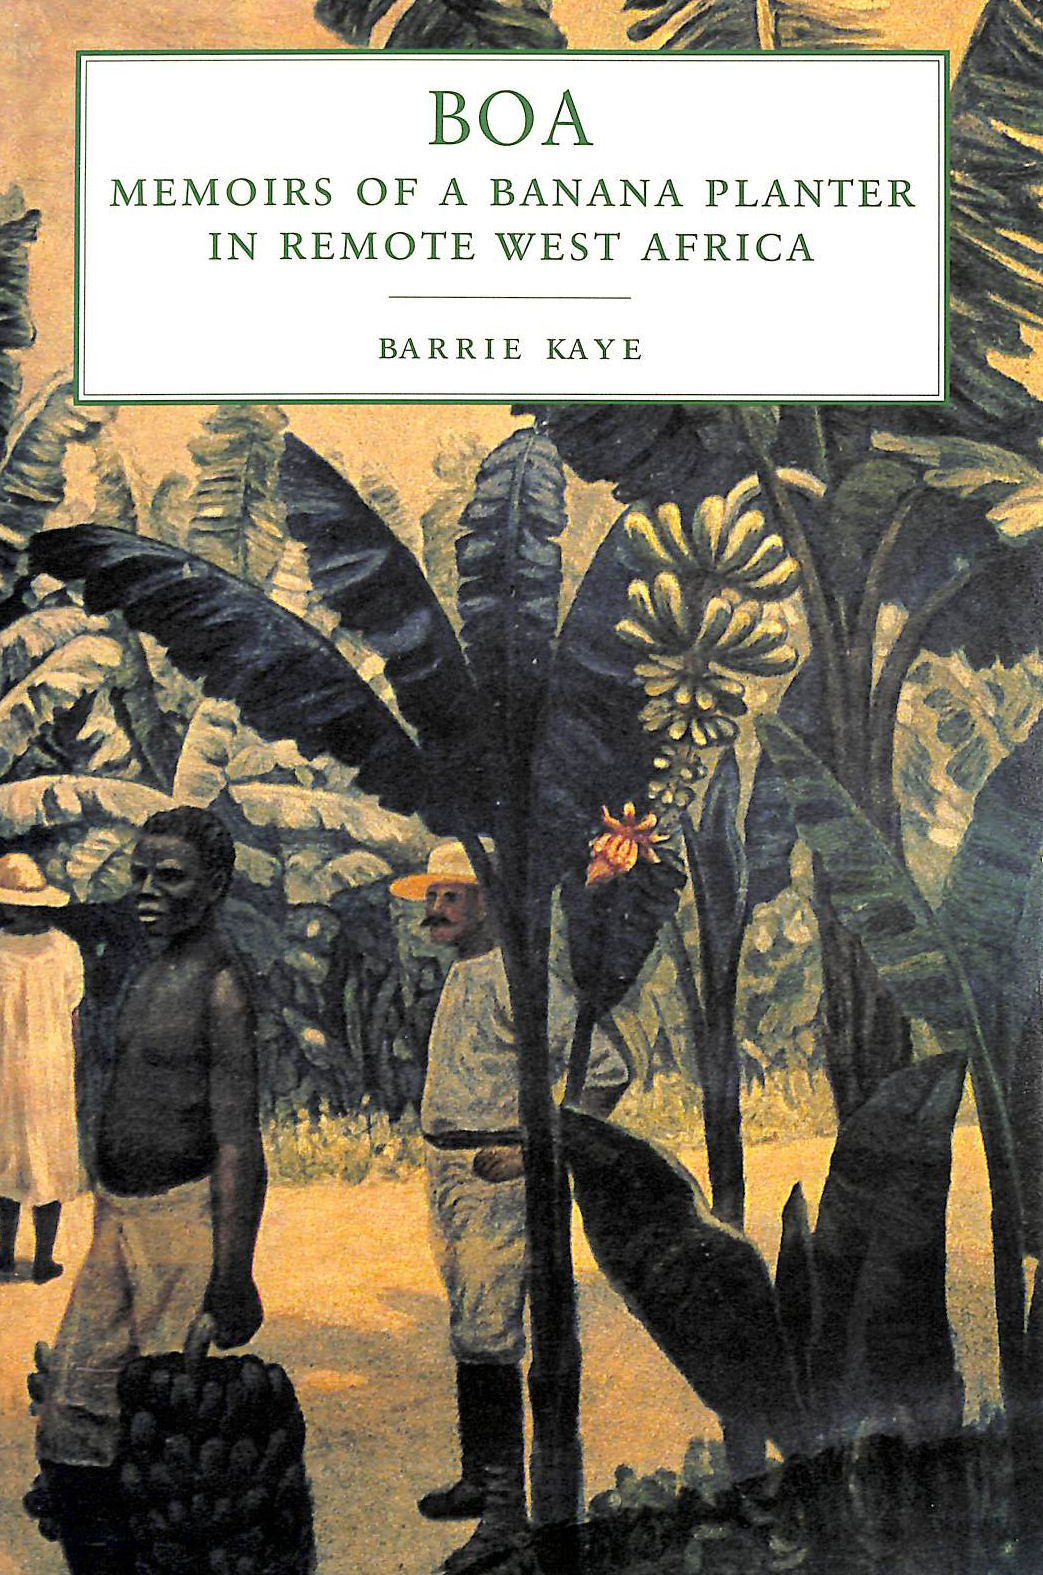 Image for Boa: Memoirs of a Banana Planter in Remote West Africa